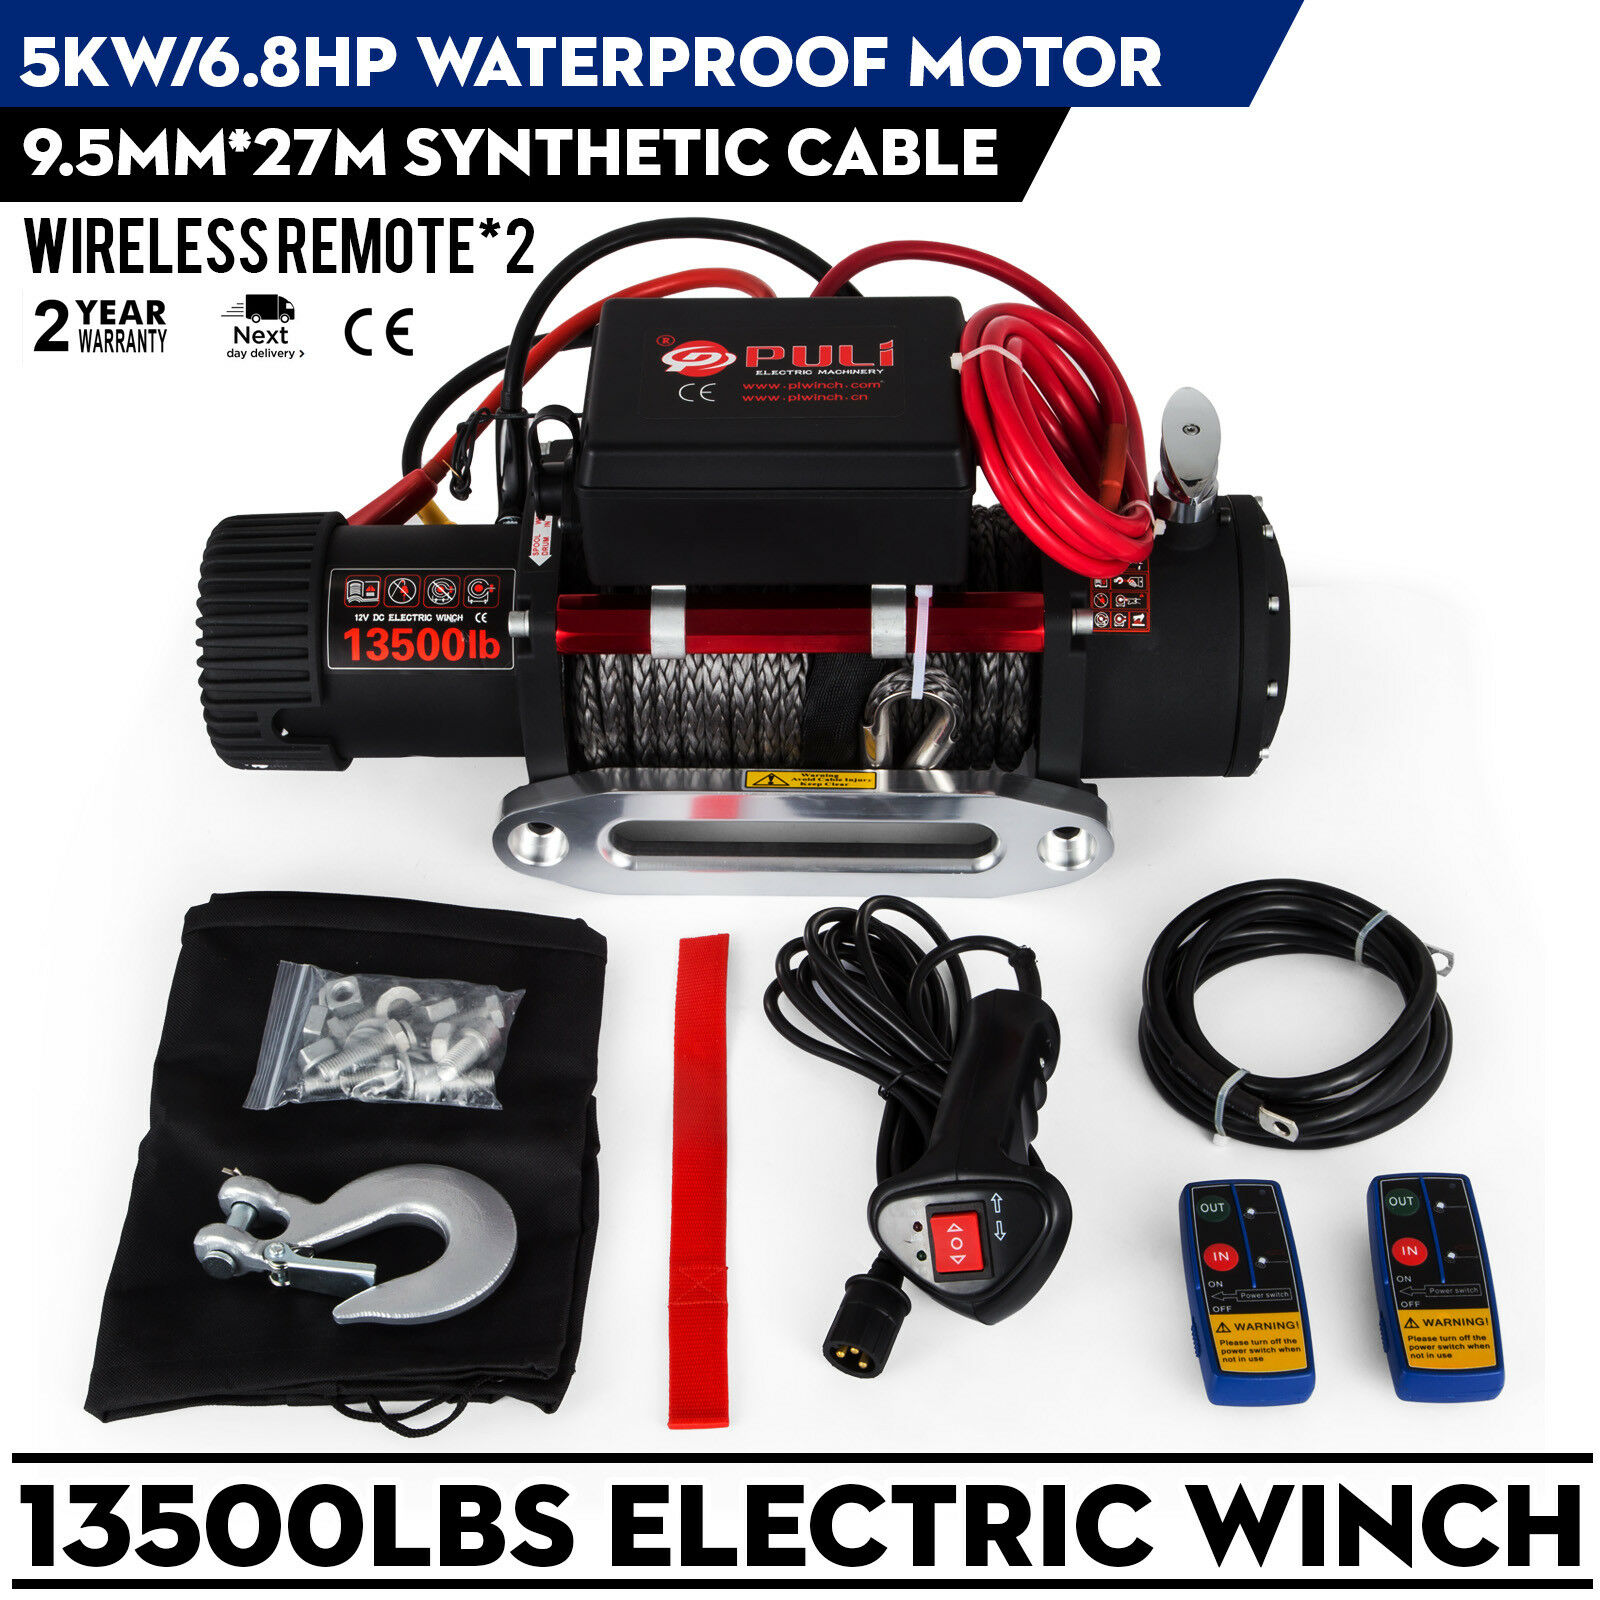 12 V Electric Windlass 13500lbs 6123.5 Kg Synthetic Rope With Remote Control